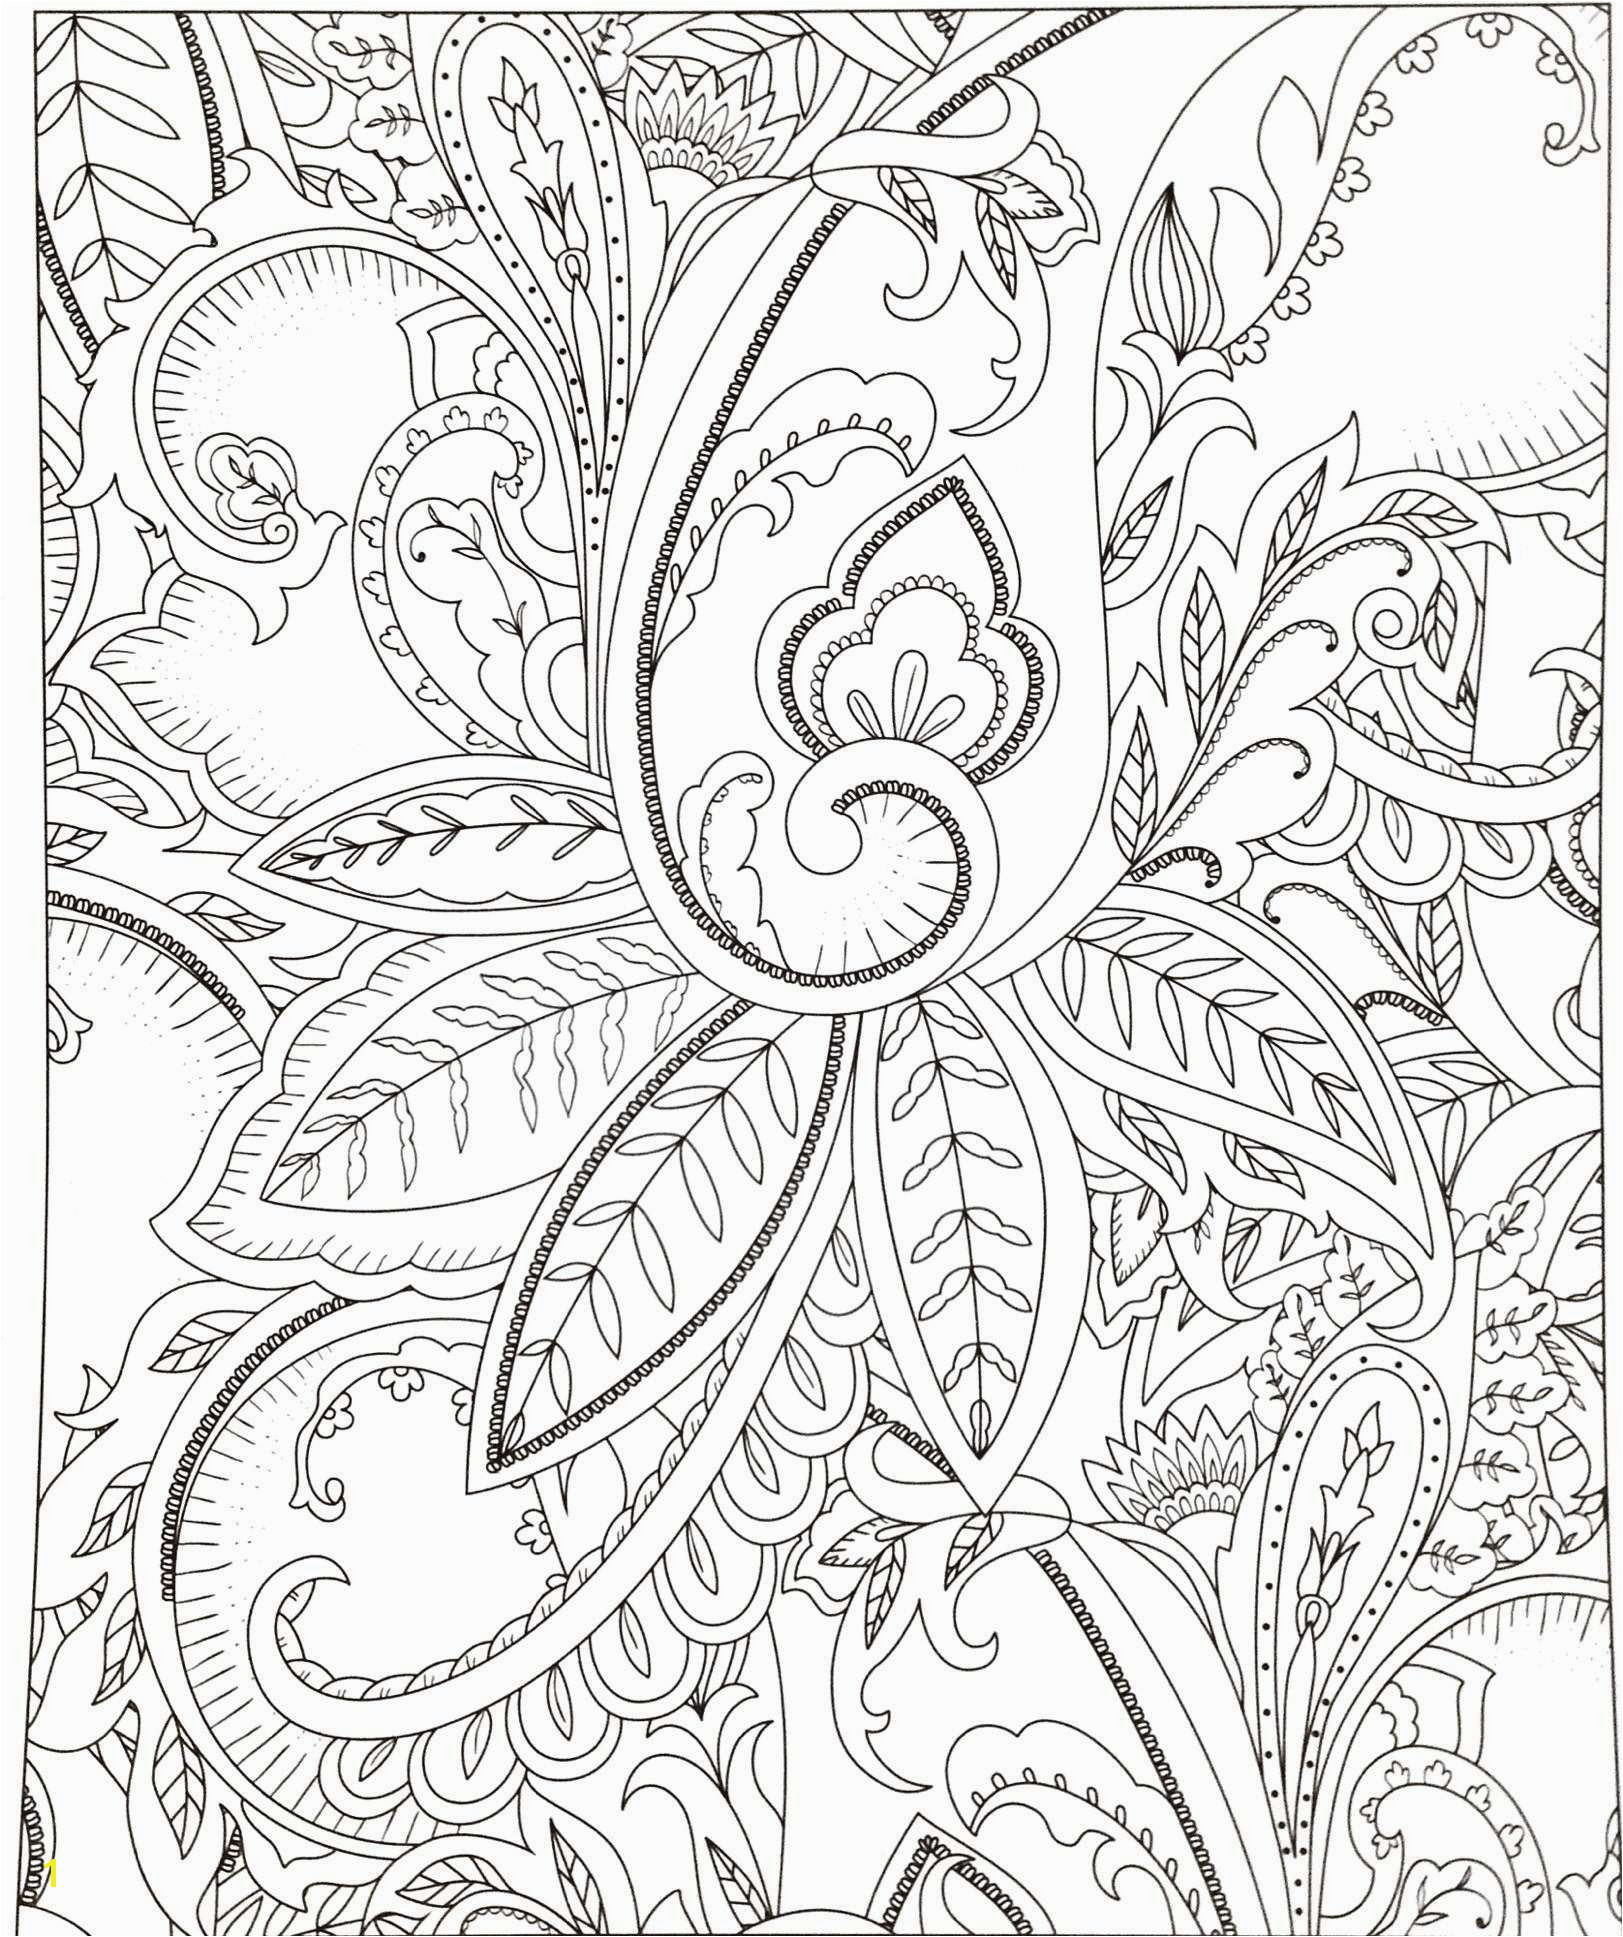 Free Printable Coloring Christmas Pages Cool Coloring Printables 0d Inspiration Von Weihnachts T Shirt Kinder